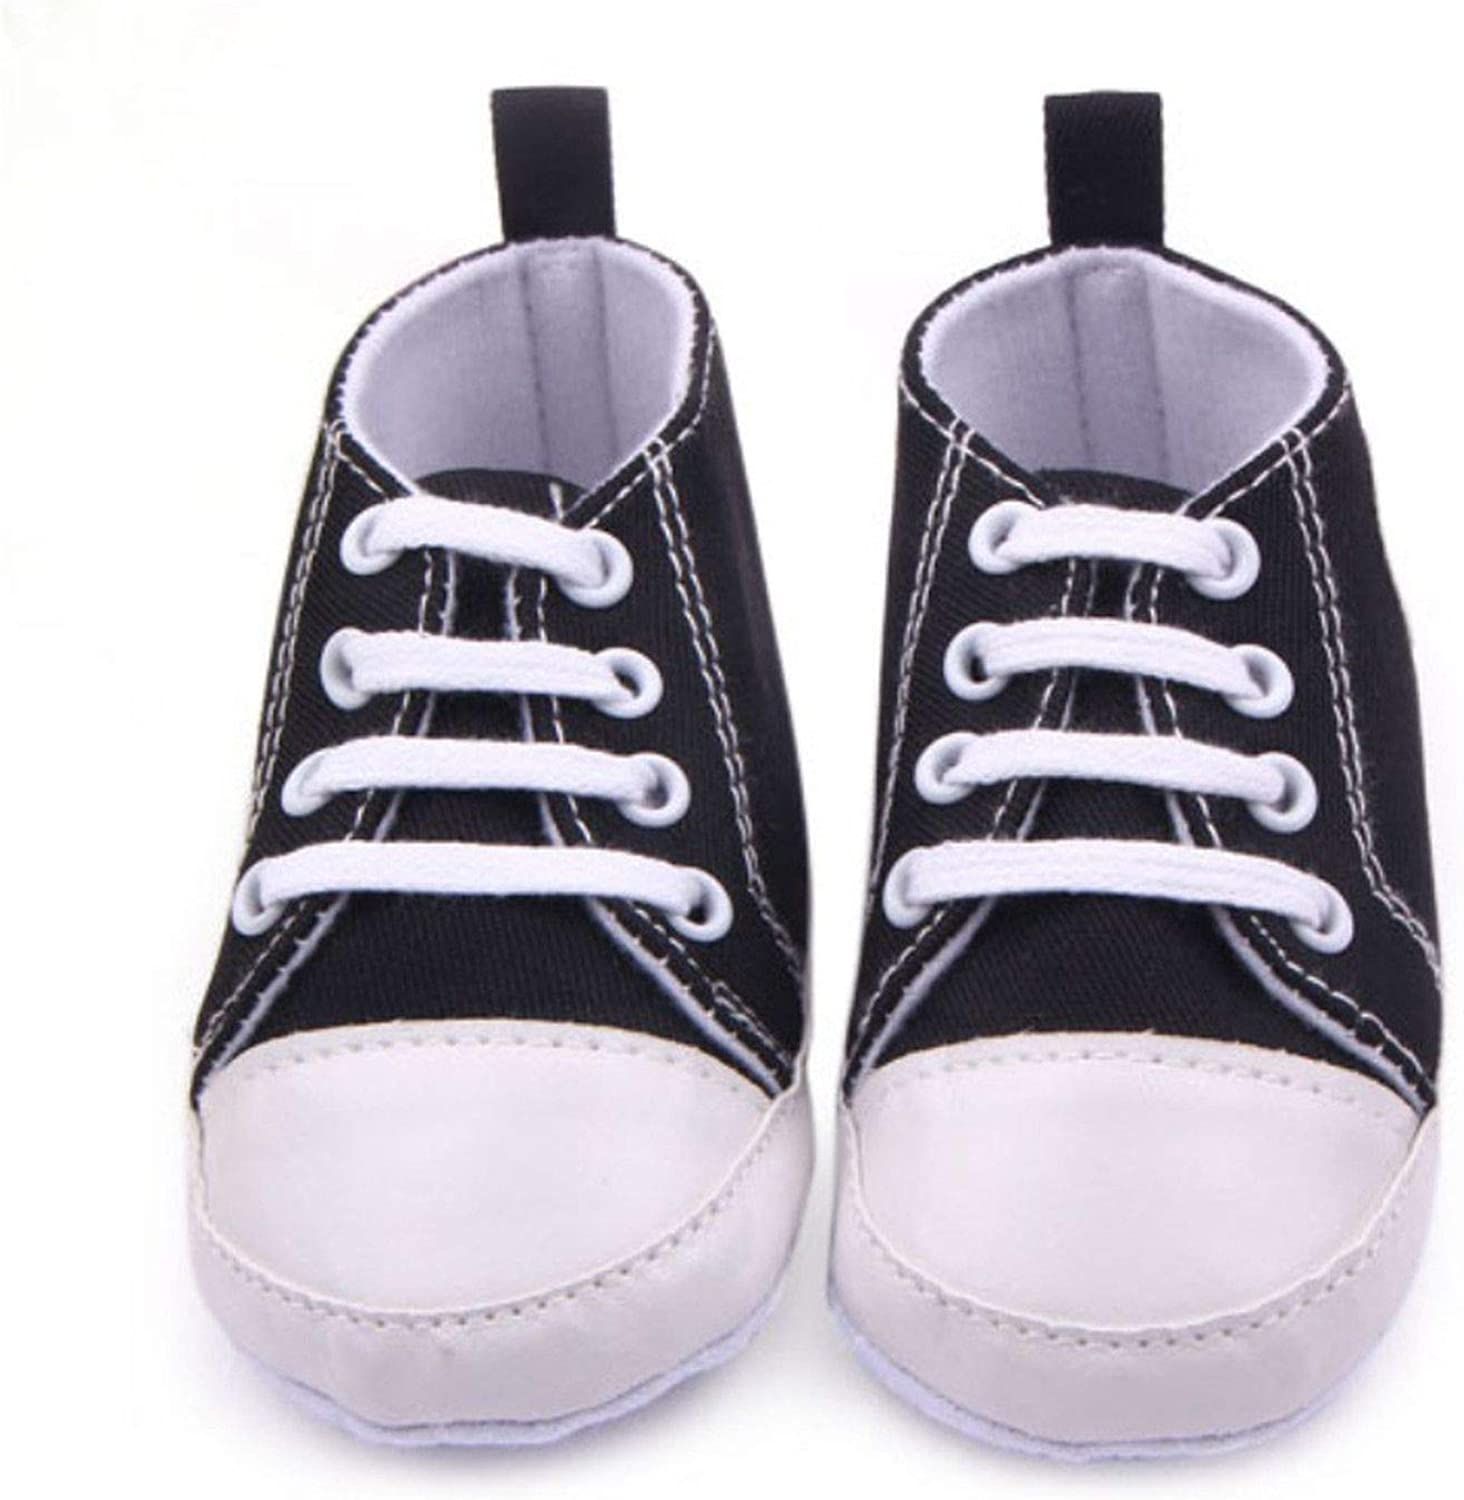 Baby Canvas Sneakers Newborn Baby Boys Girls First Walkers Shoes Infant Toddler Soft Sole Anti-Slip Baby Shoes